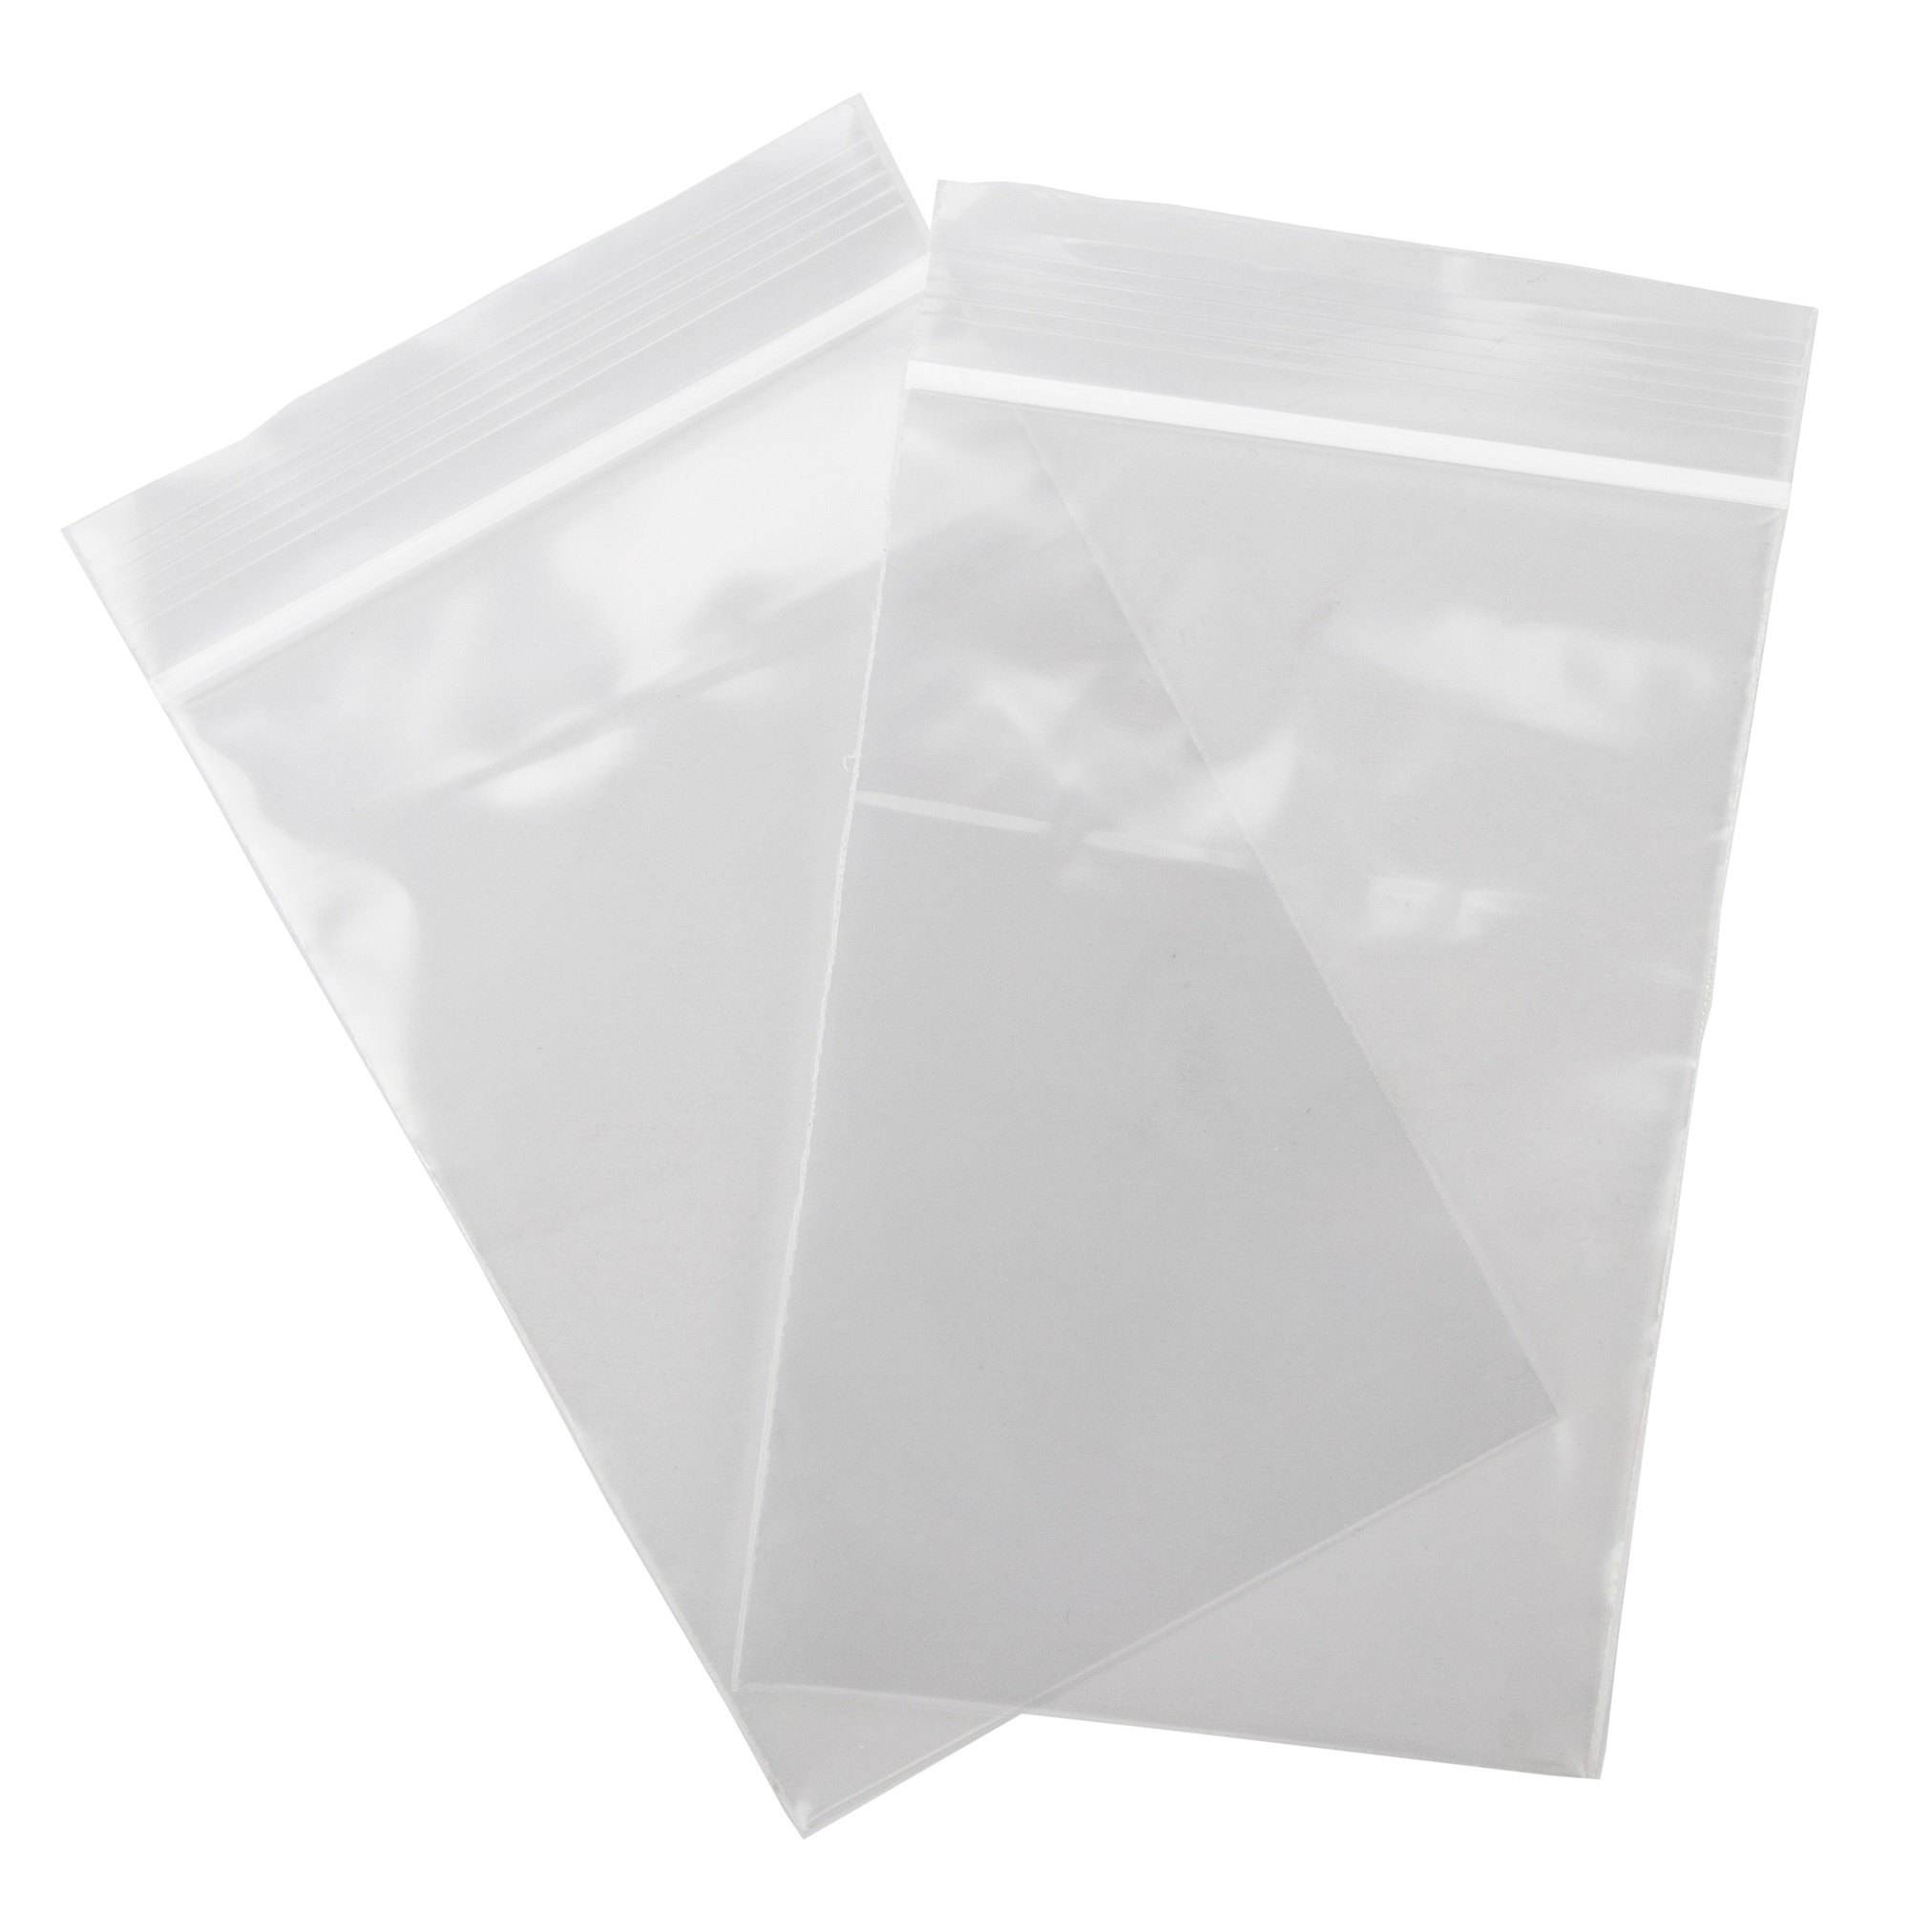 Clear Plastic Flat Open Poly Bag 9x12-1 mil MagicWater Supply 100 Pack